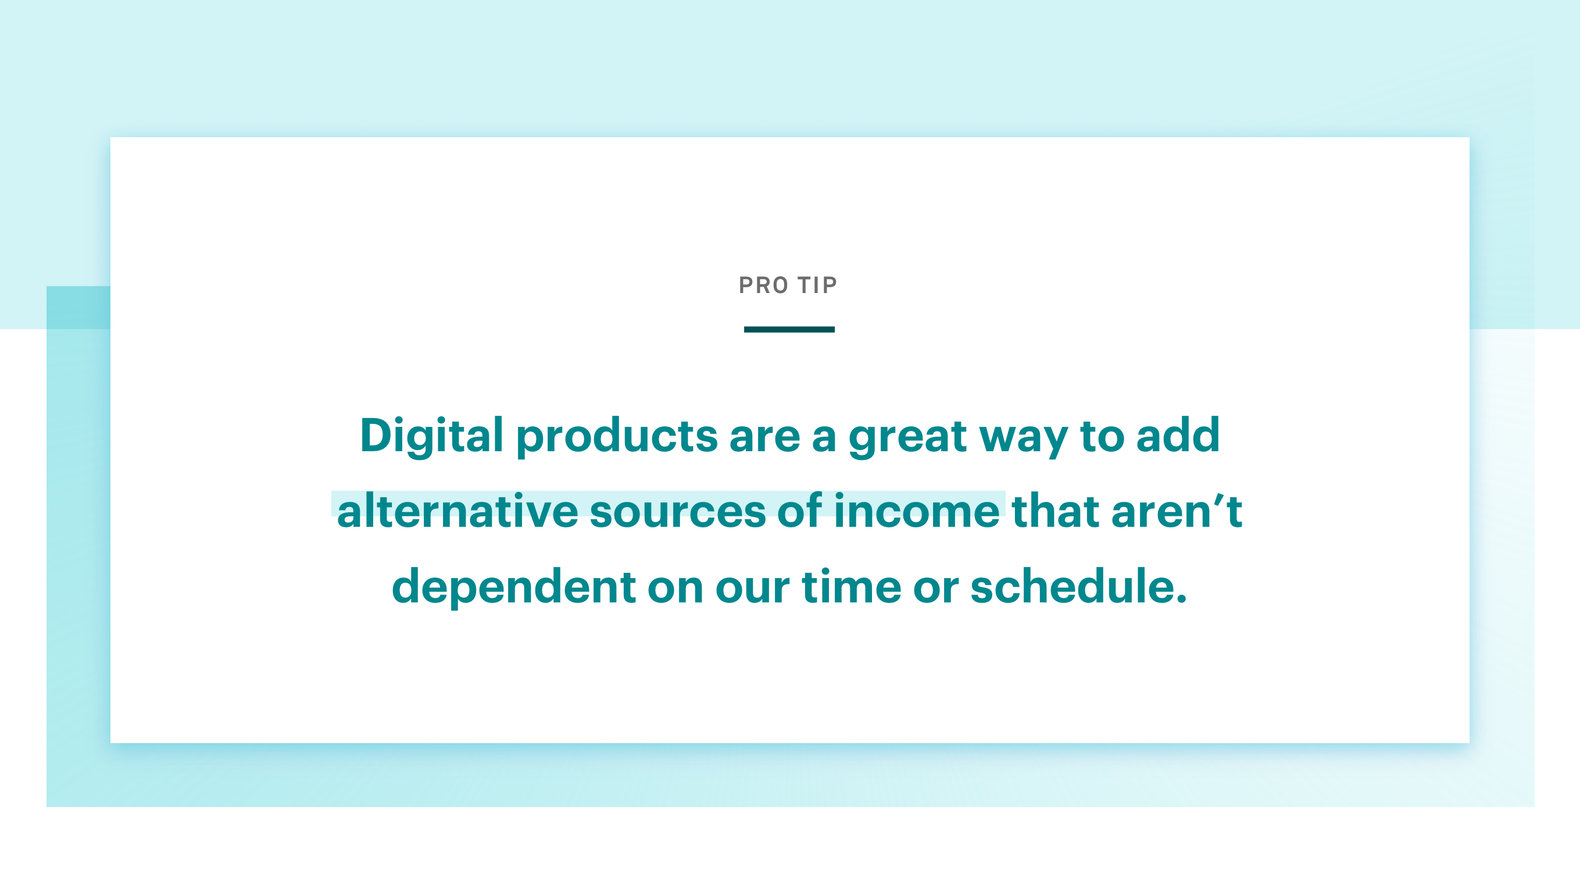 Pro tip: Digital products are a great way to add alternative sources of income that aren't dependent on our time or schedule.